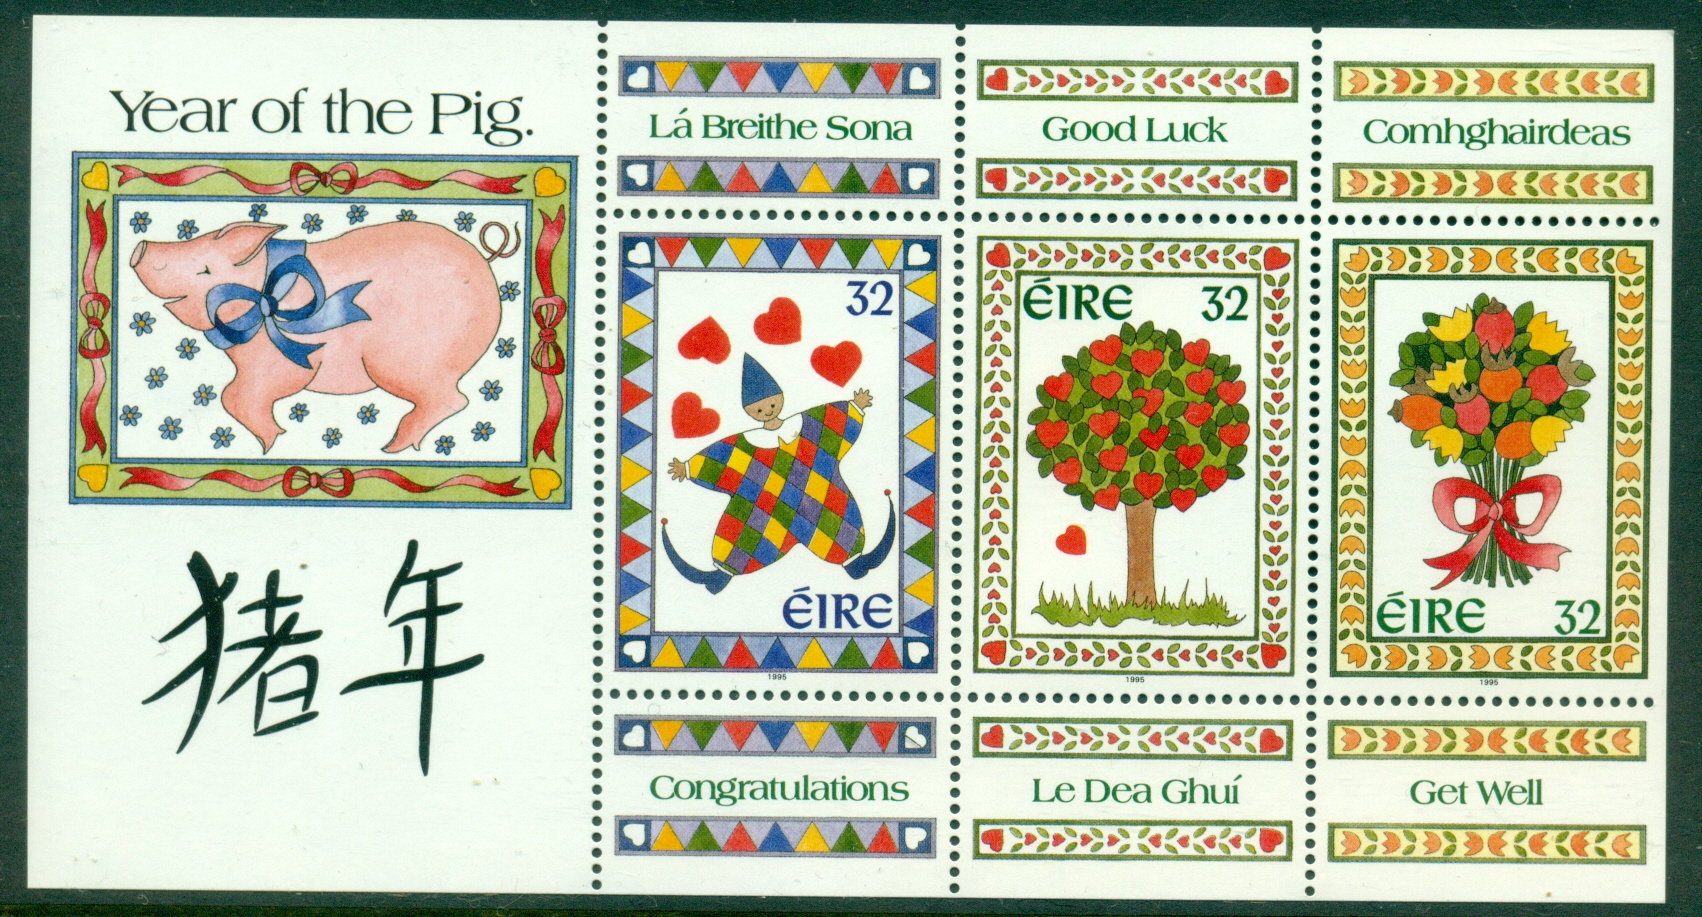 1995 year of the pig - Chinese New Year 1995